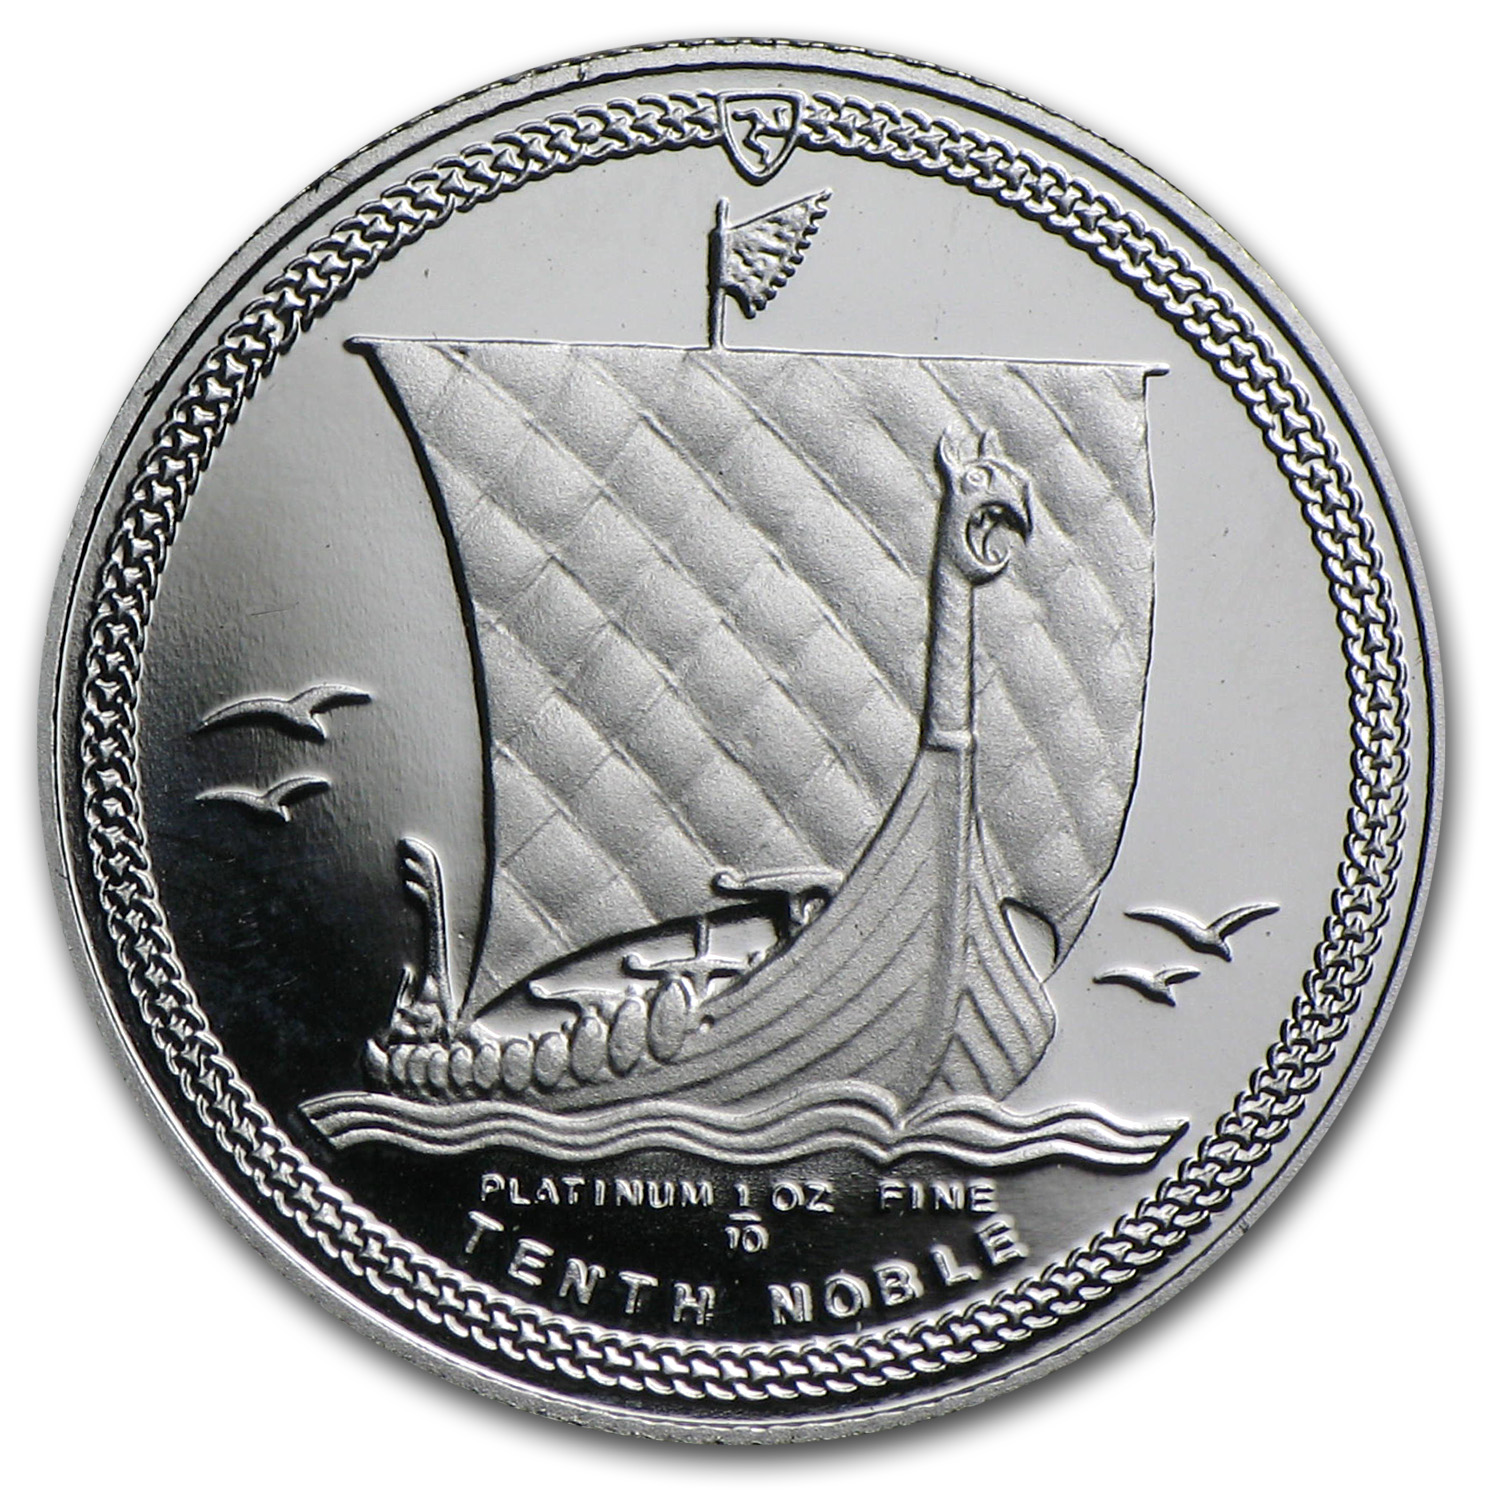 1/10 oz Isle of Man Platinum Noble Proof